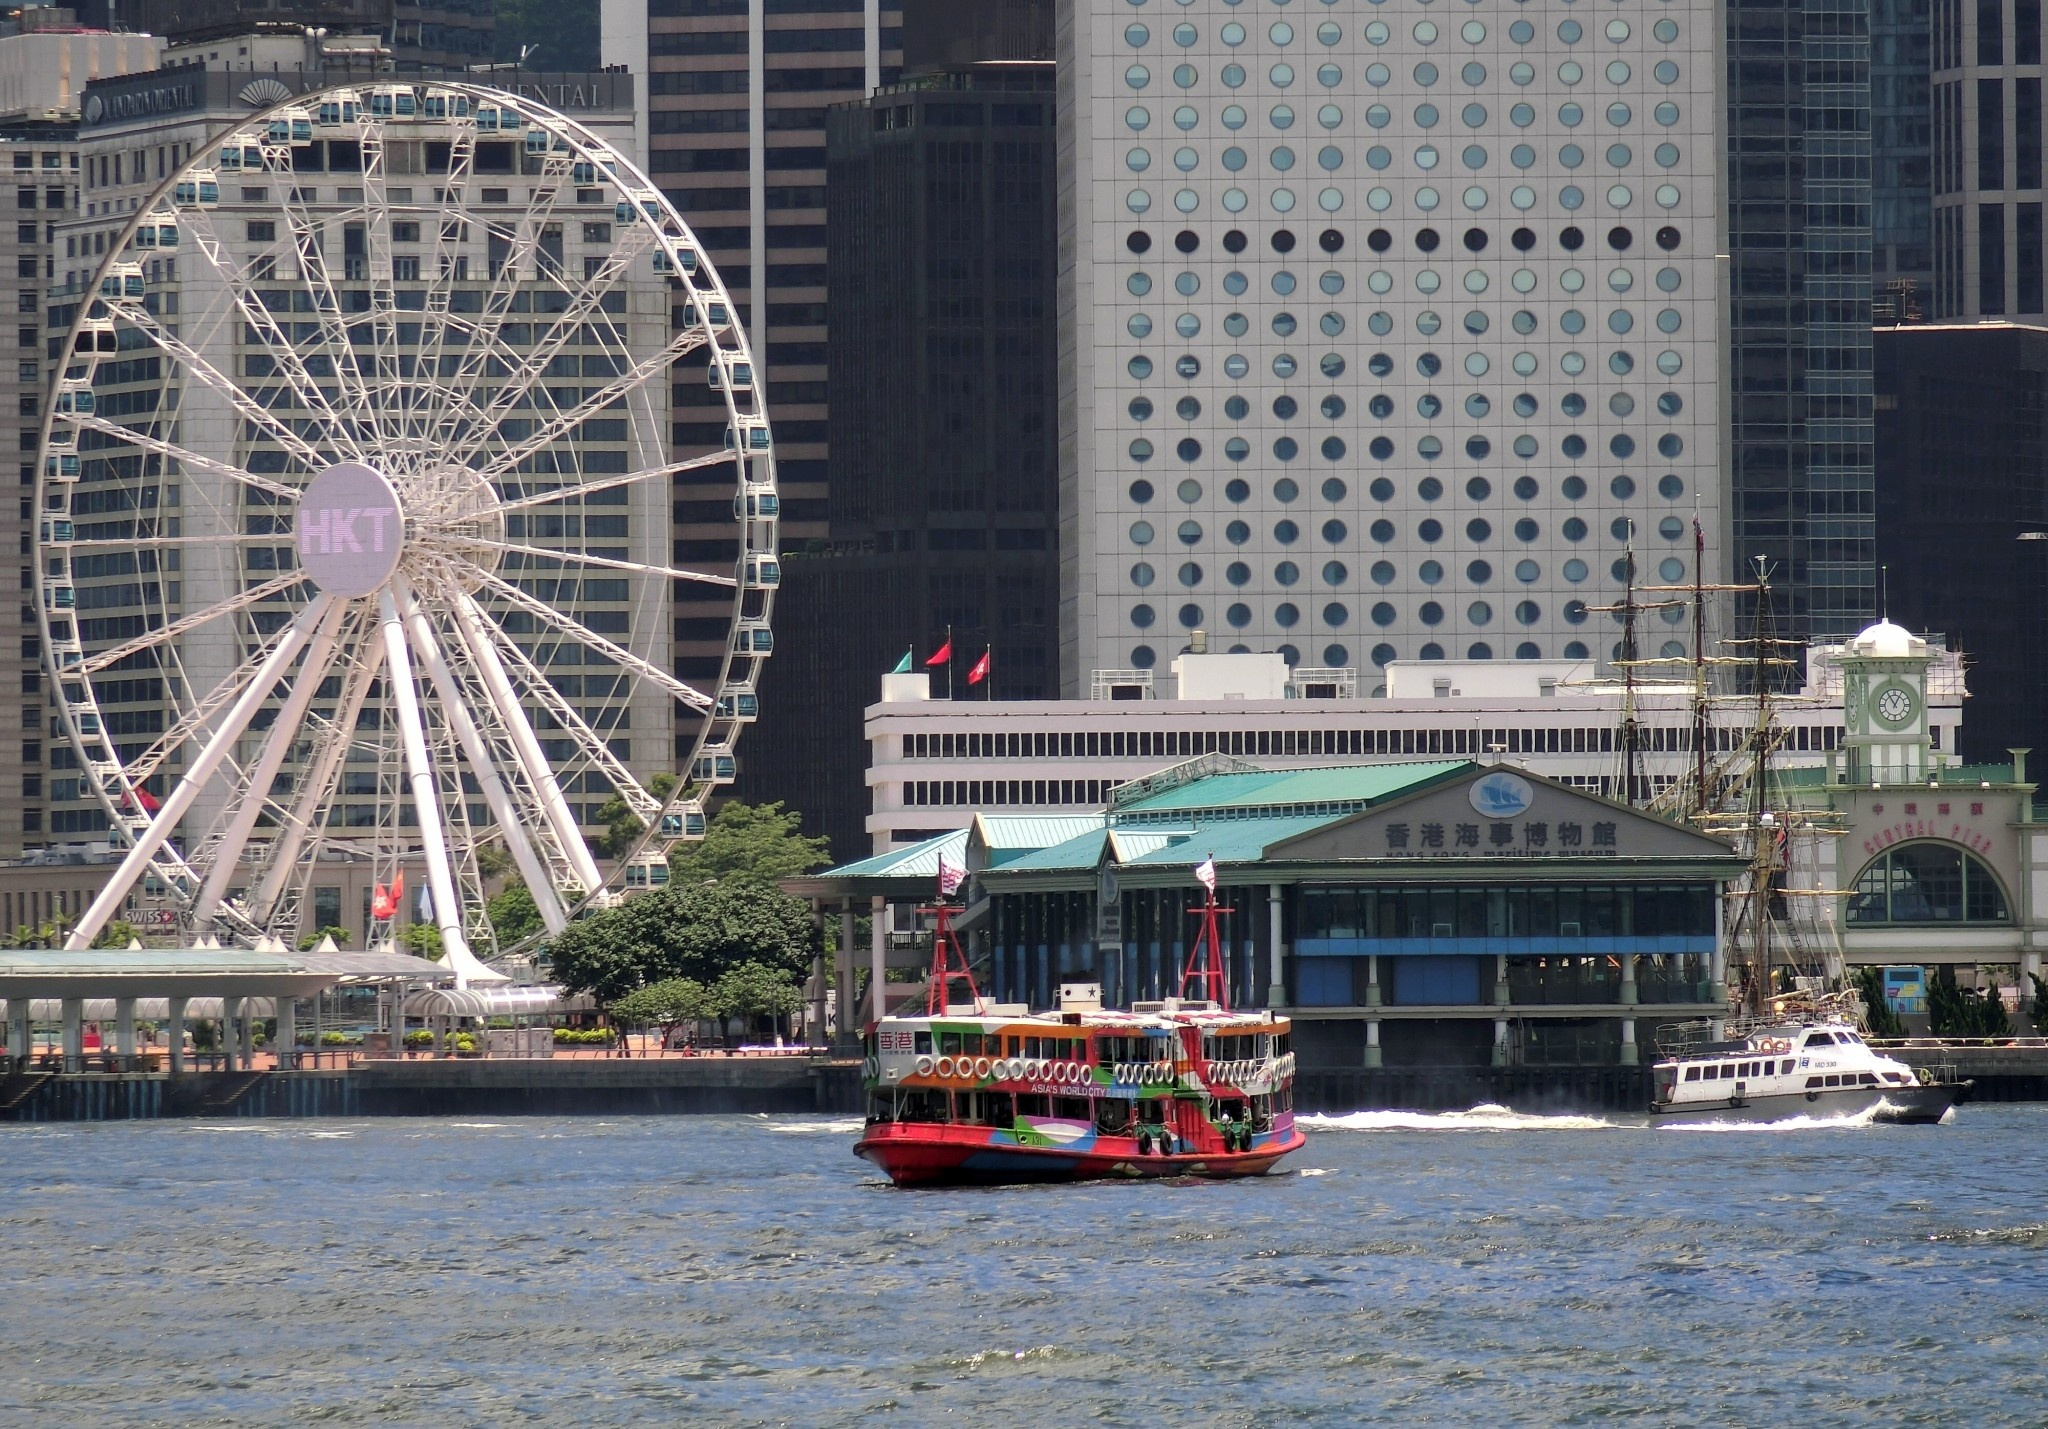 Star ferry in Hong Kong Harbour by pop88123